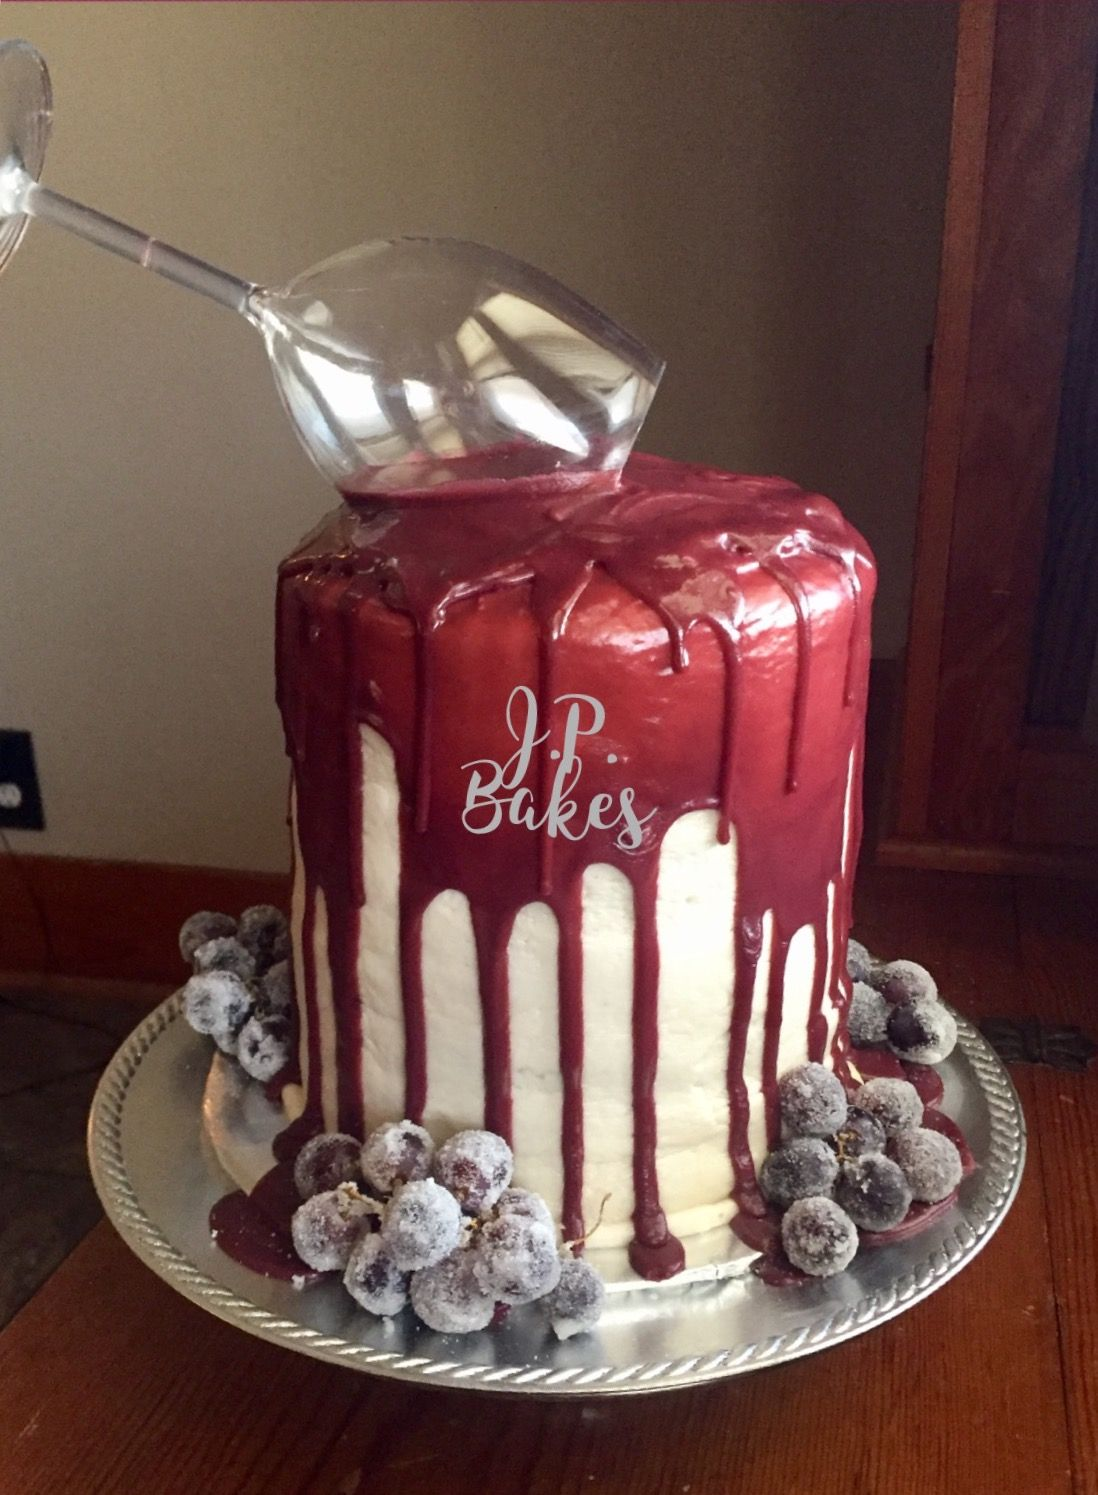 wine birthday cake Birthday cake 50th wine sugared fruit grapes spilled wine JP Bakes  wine birthday cake